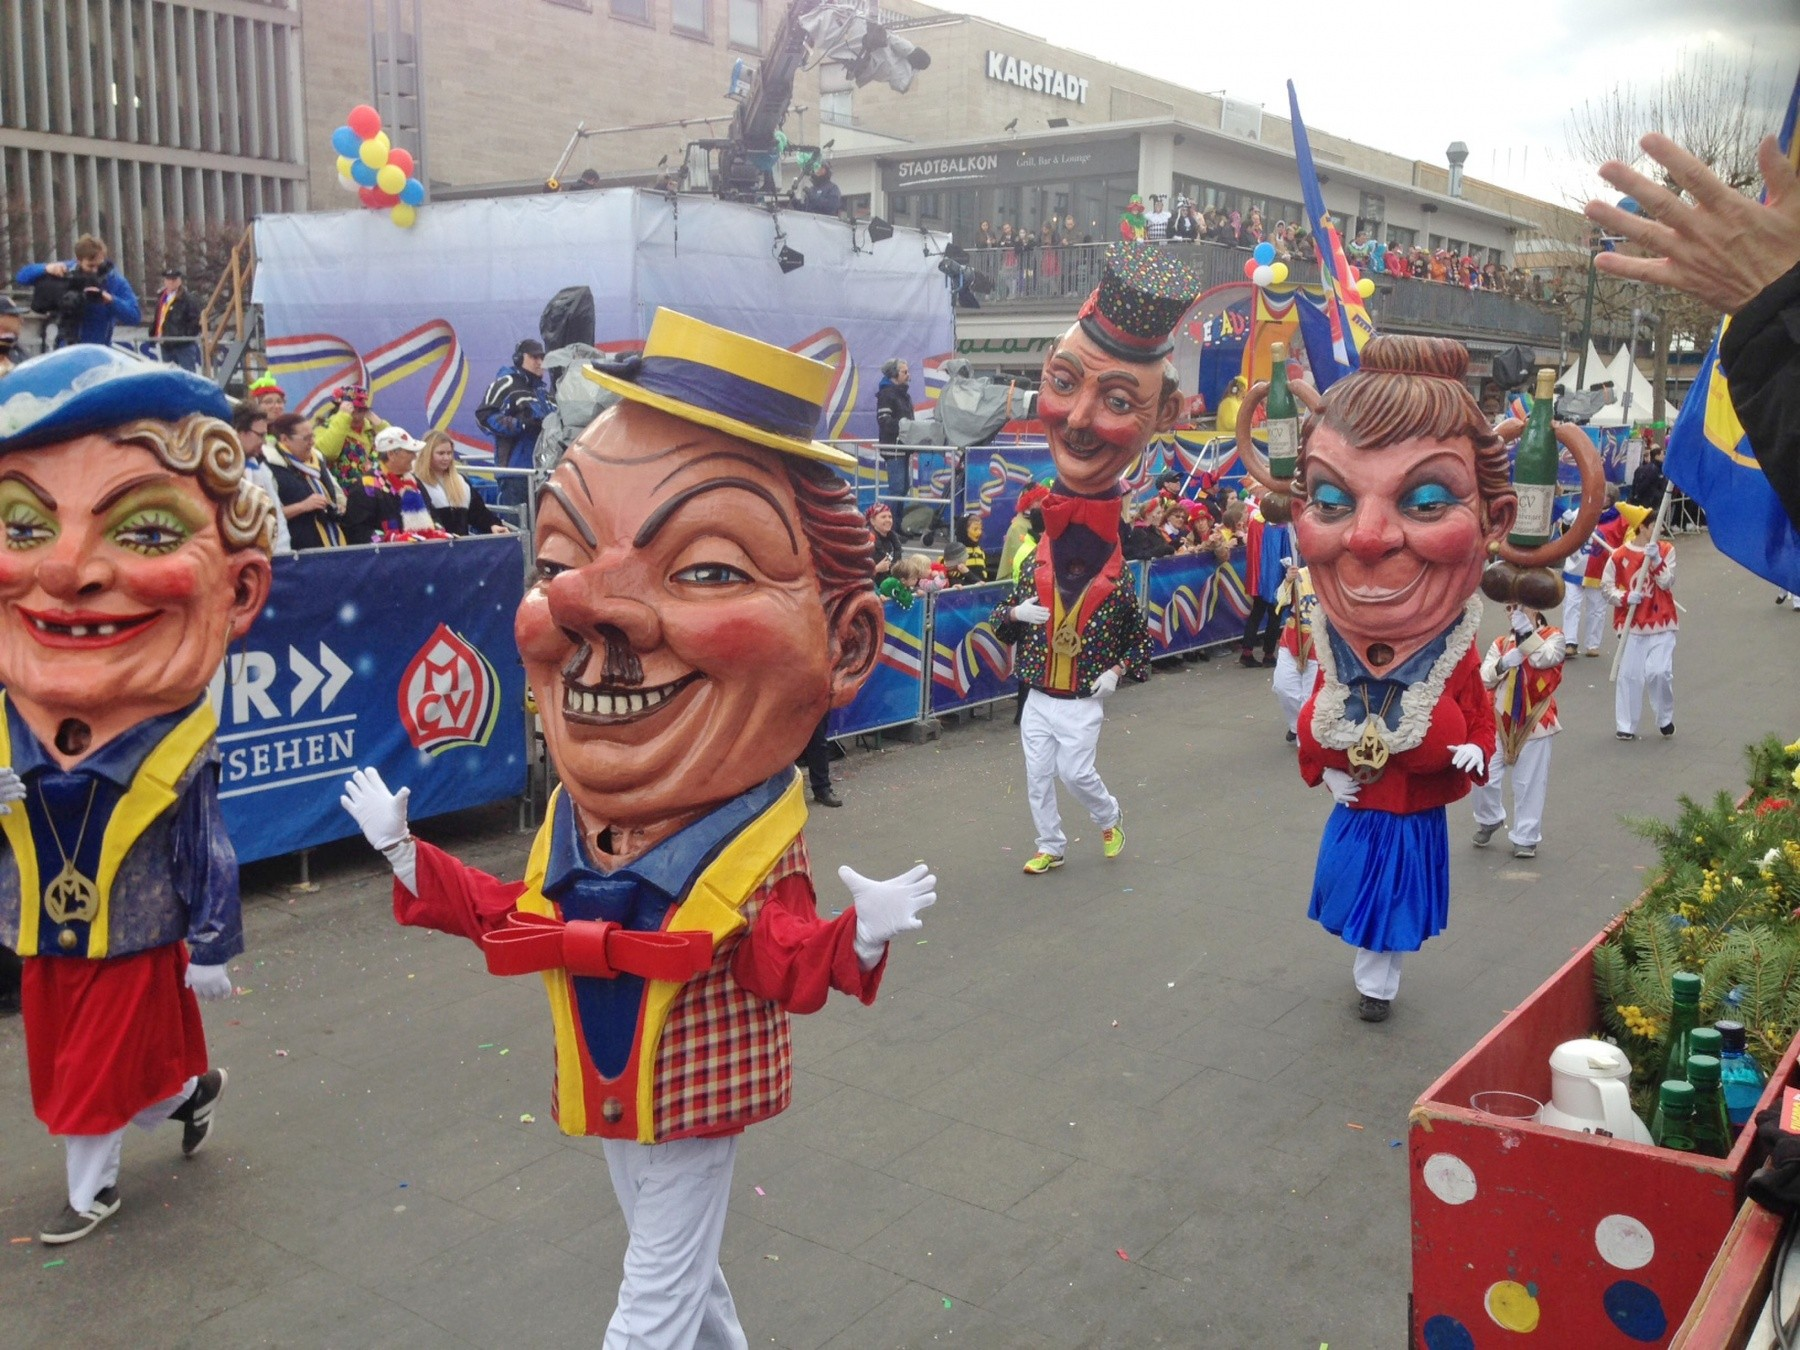 Germans celebrate Fasching with parades, fairs   Article   The United  States Army